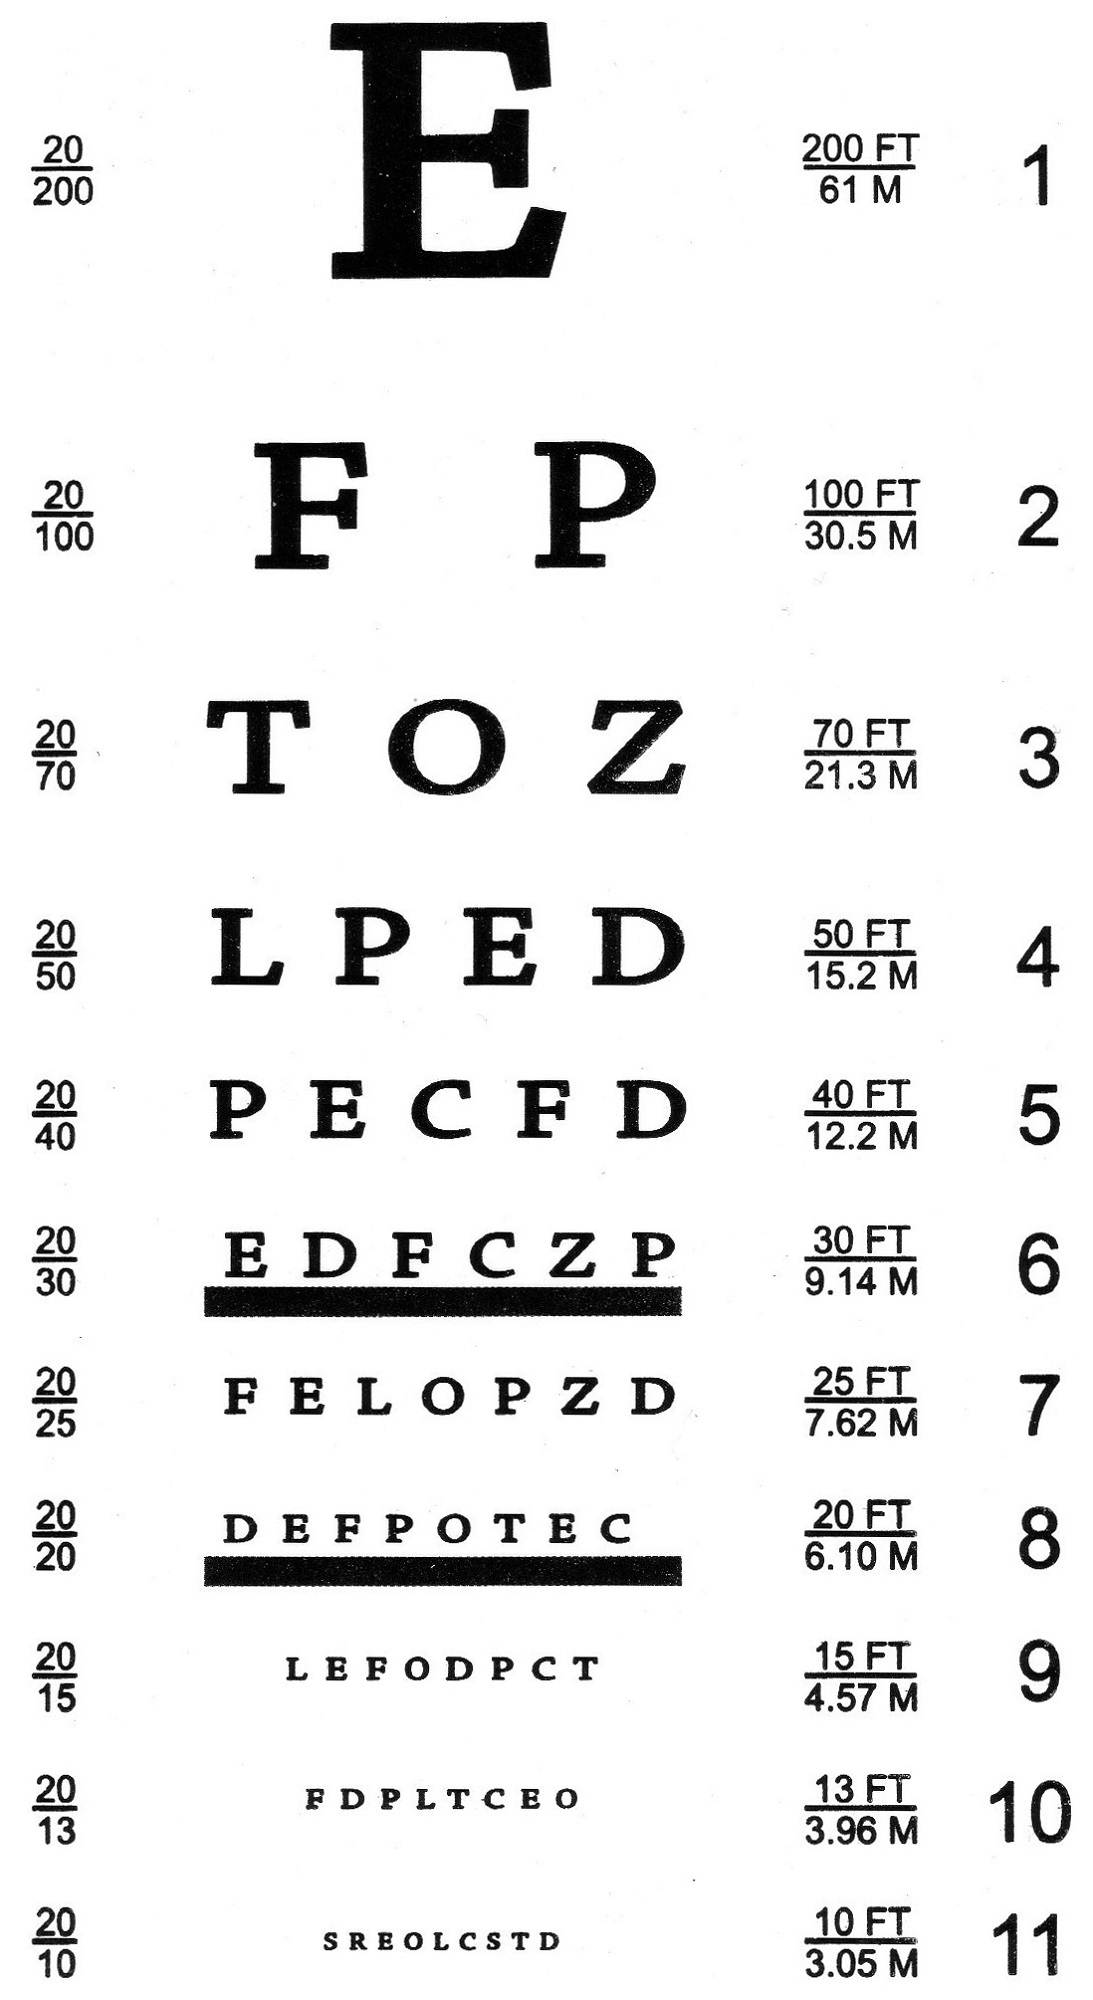 snellen chart for eye